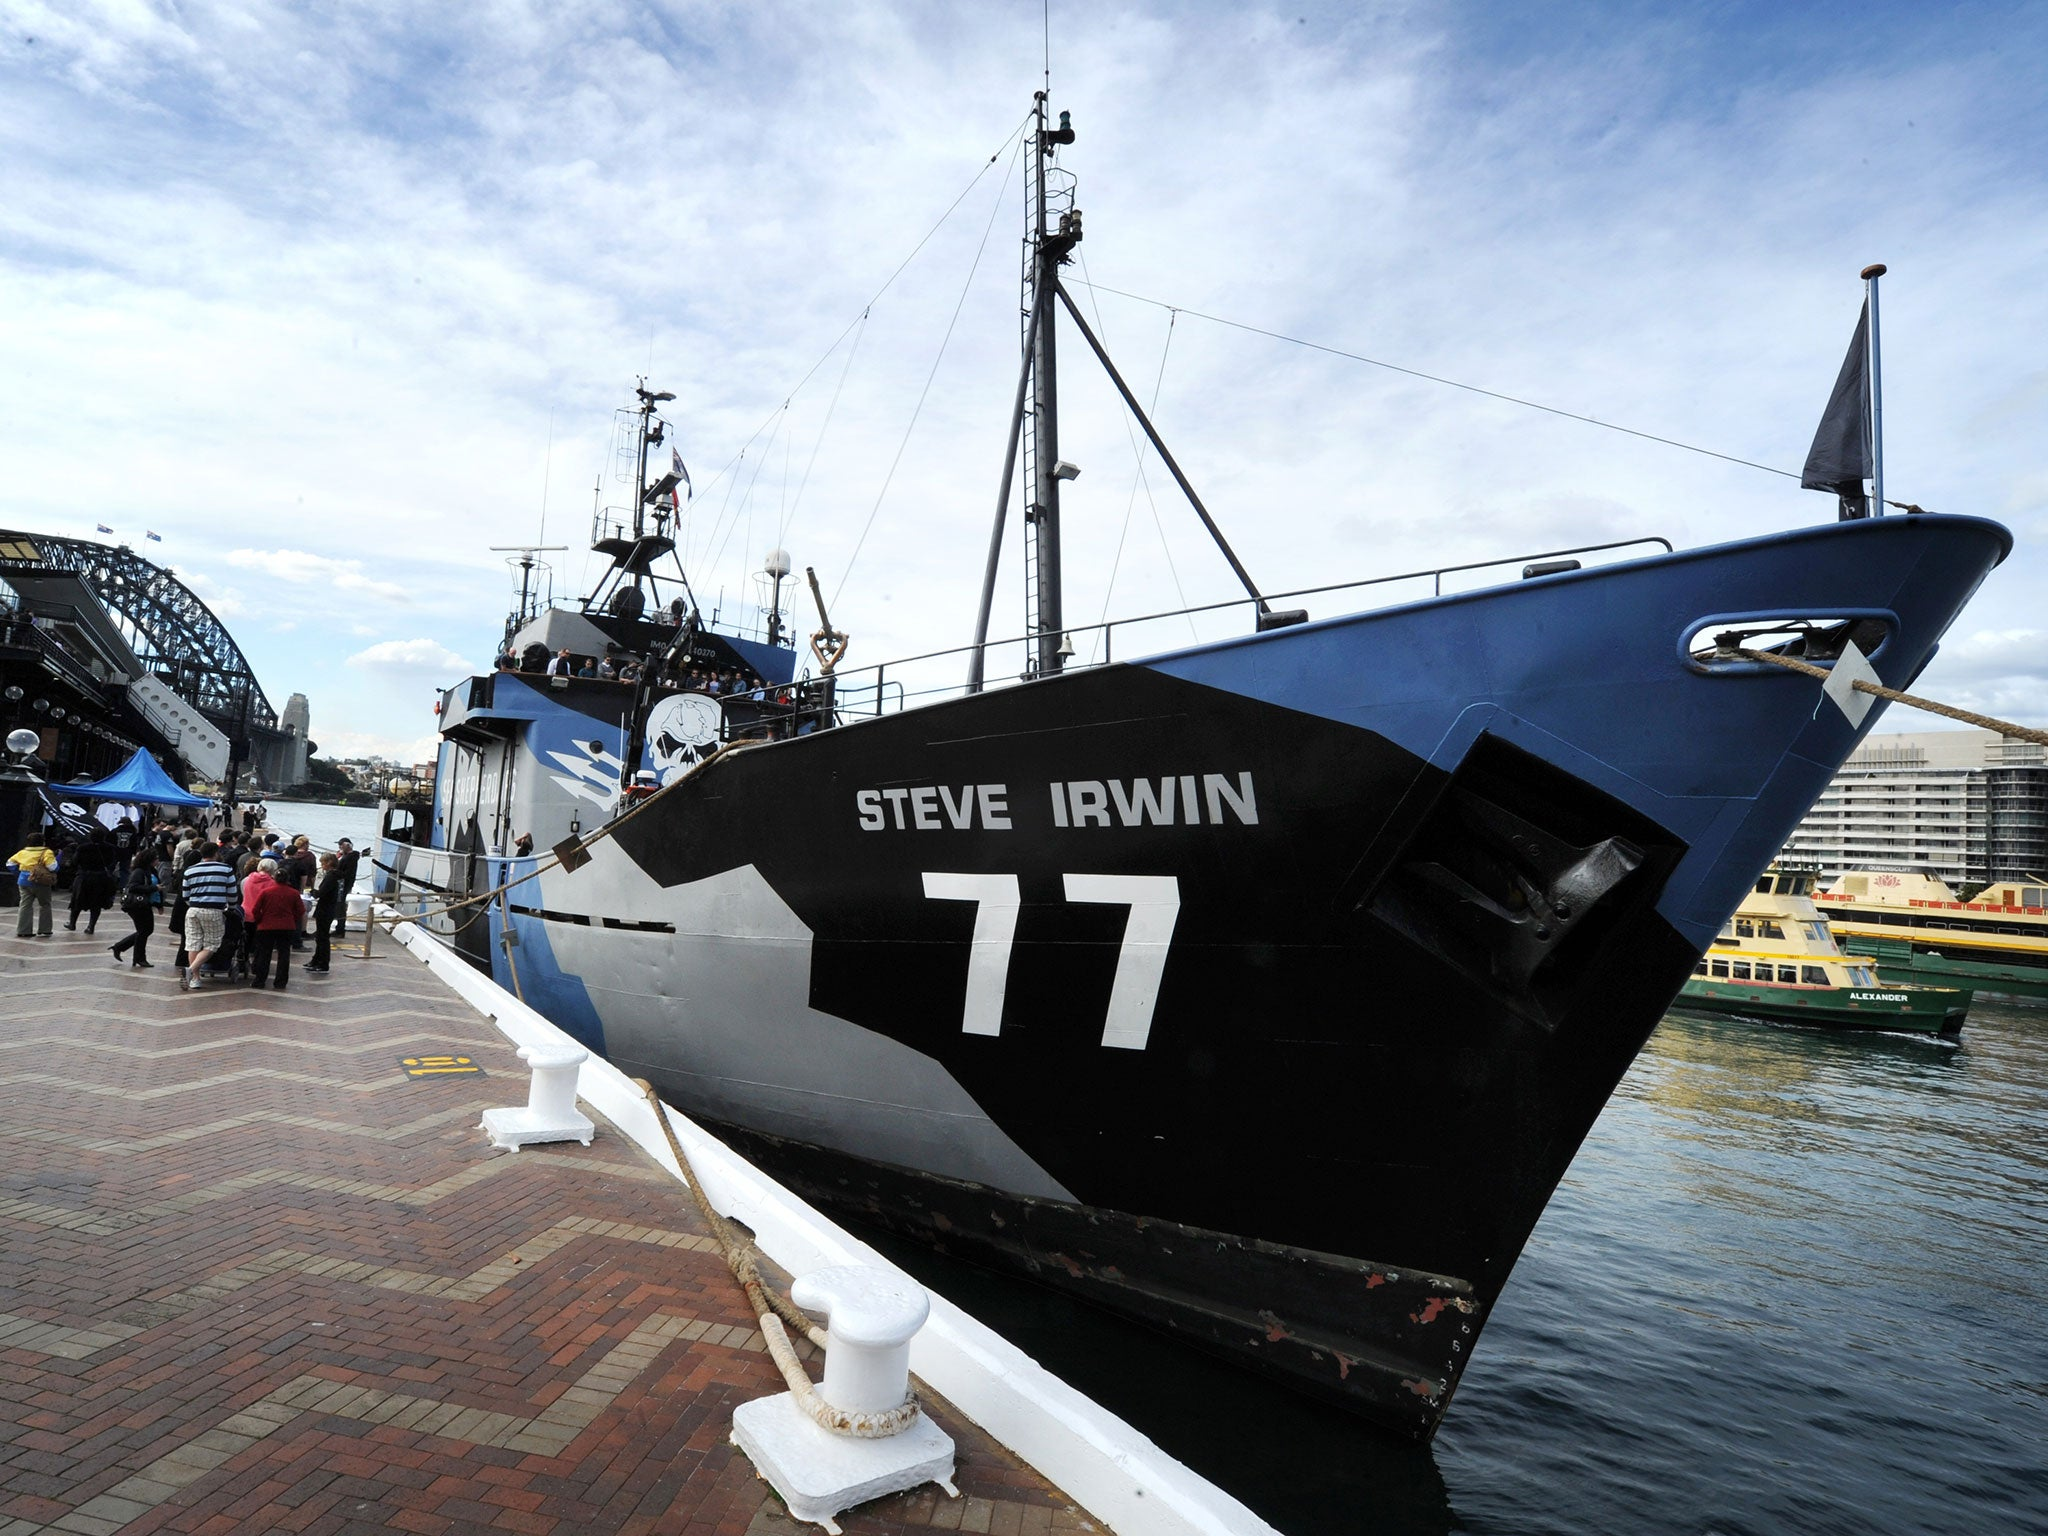 Sea Shepherd Conservation Group In High Seas Pursuit Of Chinese Fishing Boat Over Alleged